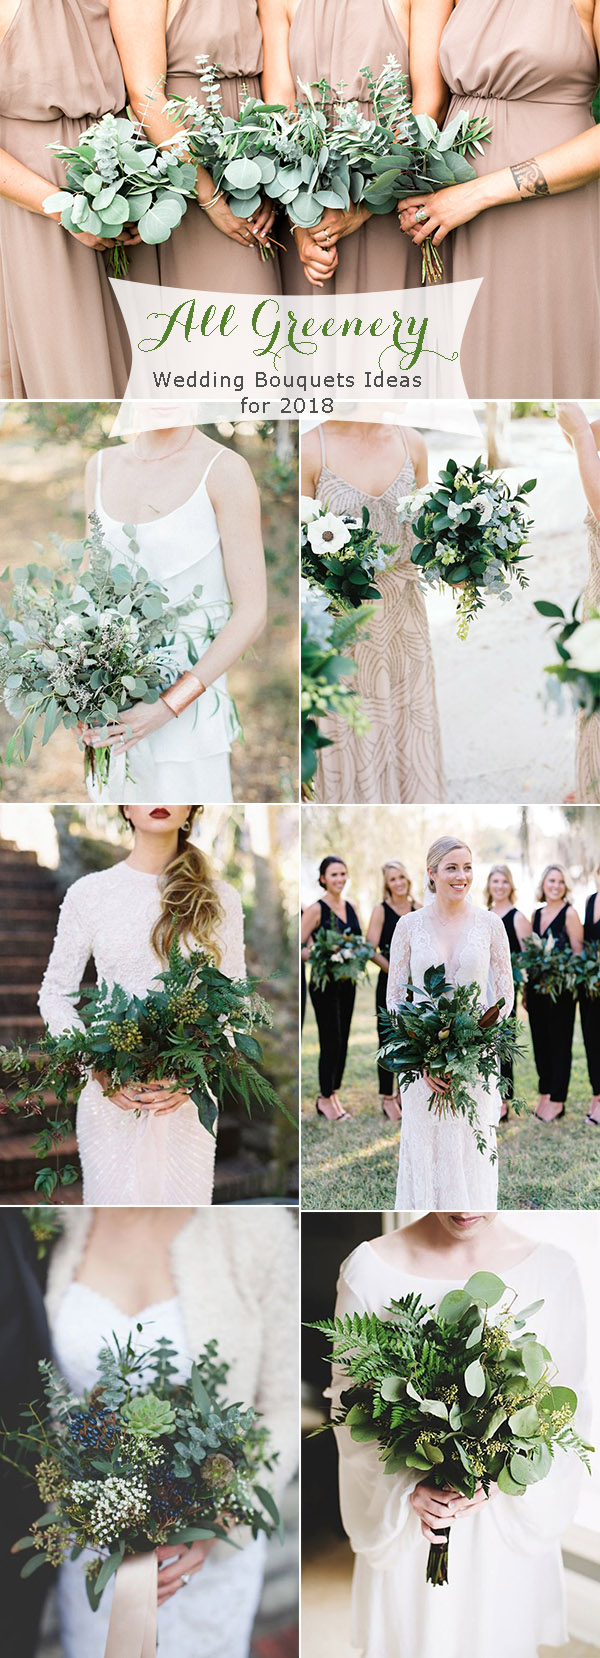 All Greenery Wedding Bouquets Ideas for 2018 Trends